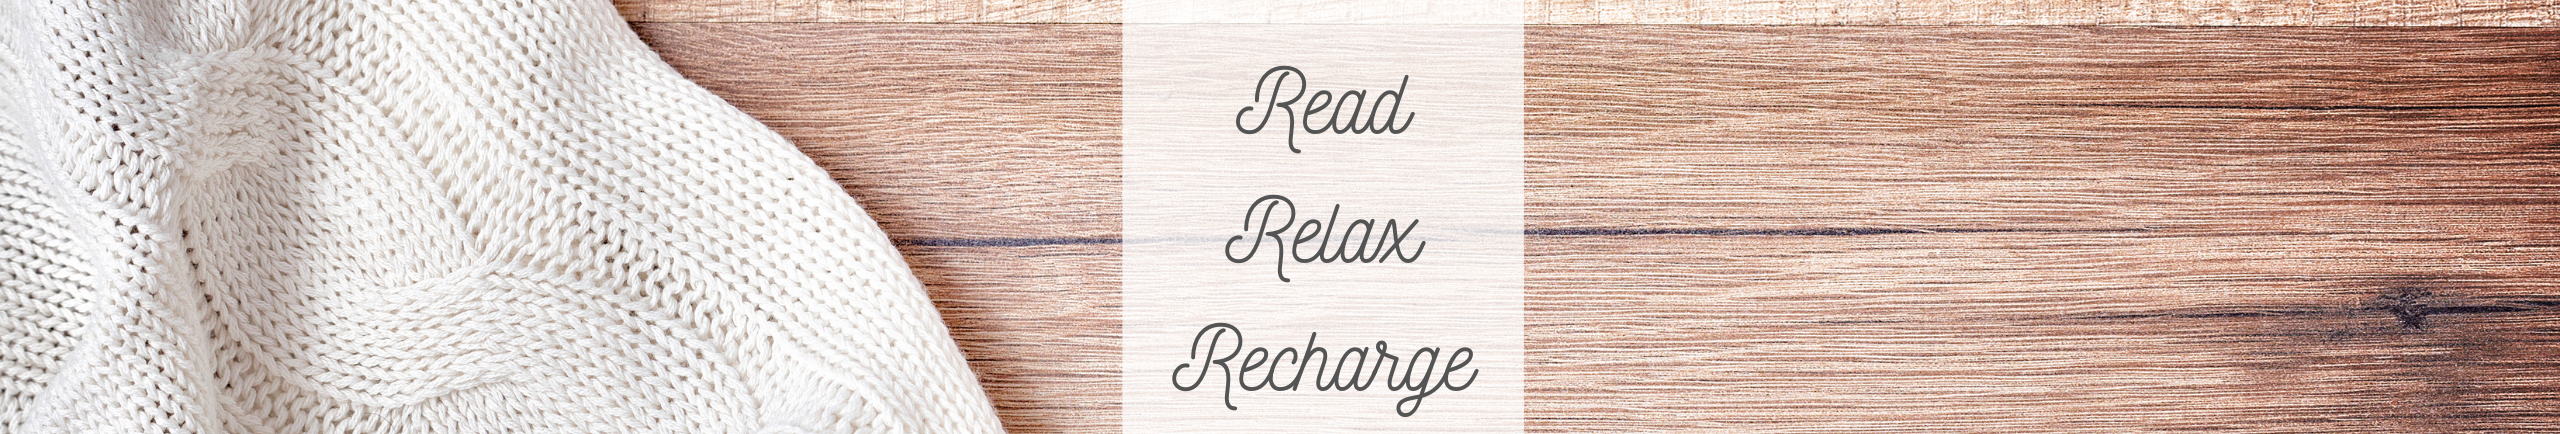 Read Relax Recharge